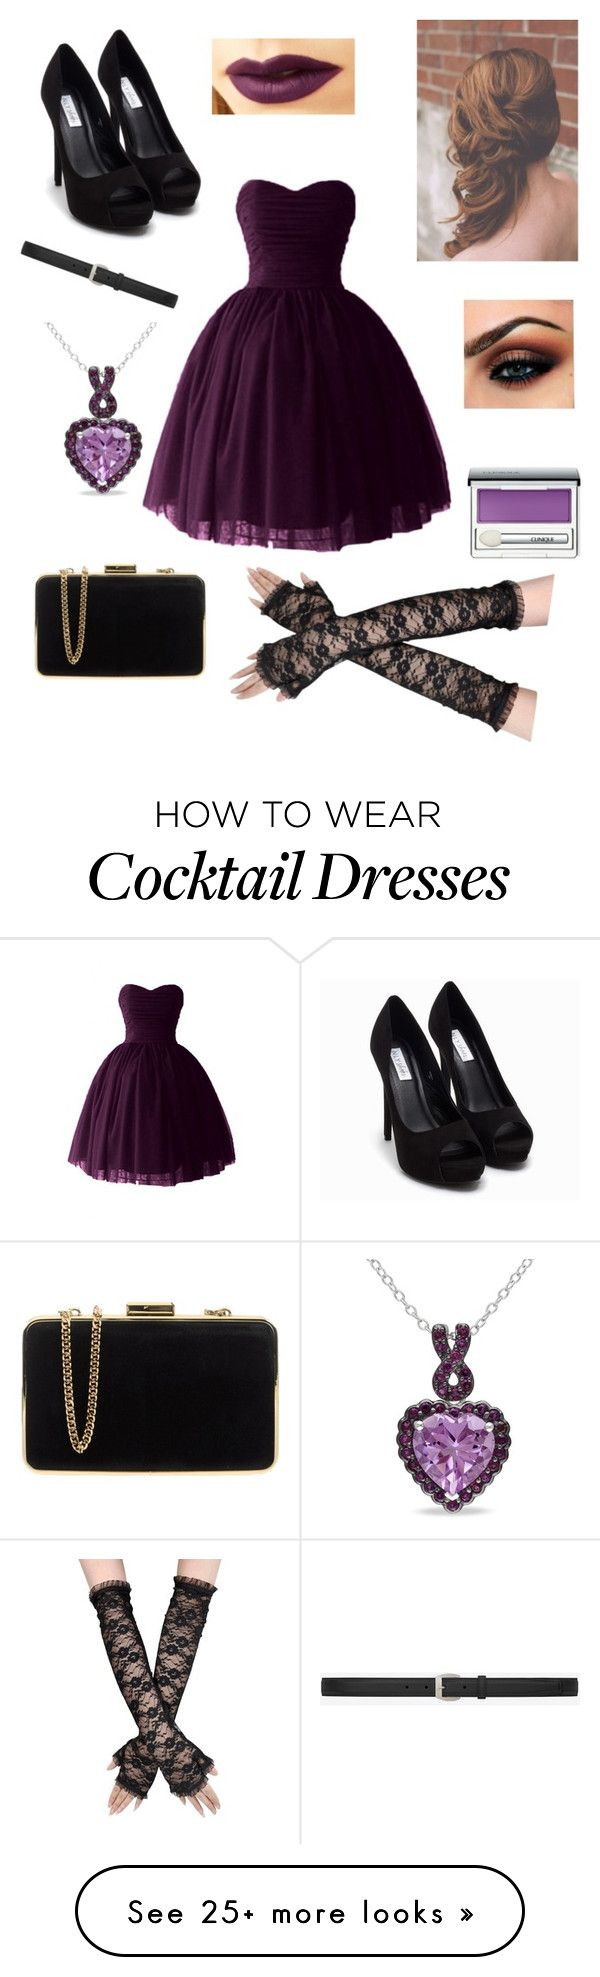 """Interesting xx"" by rachelrobinson-3 on Polyvore featuring Nly Shoes, Yves Saint Laurent, MICHAEL Michael Kors, Lime Crime, Miadora and Clinique"